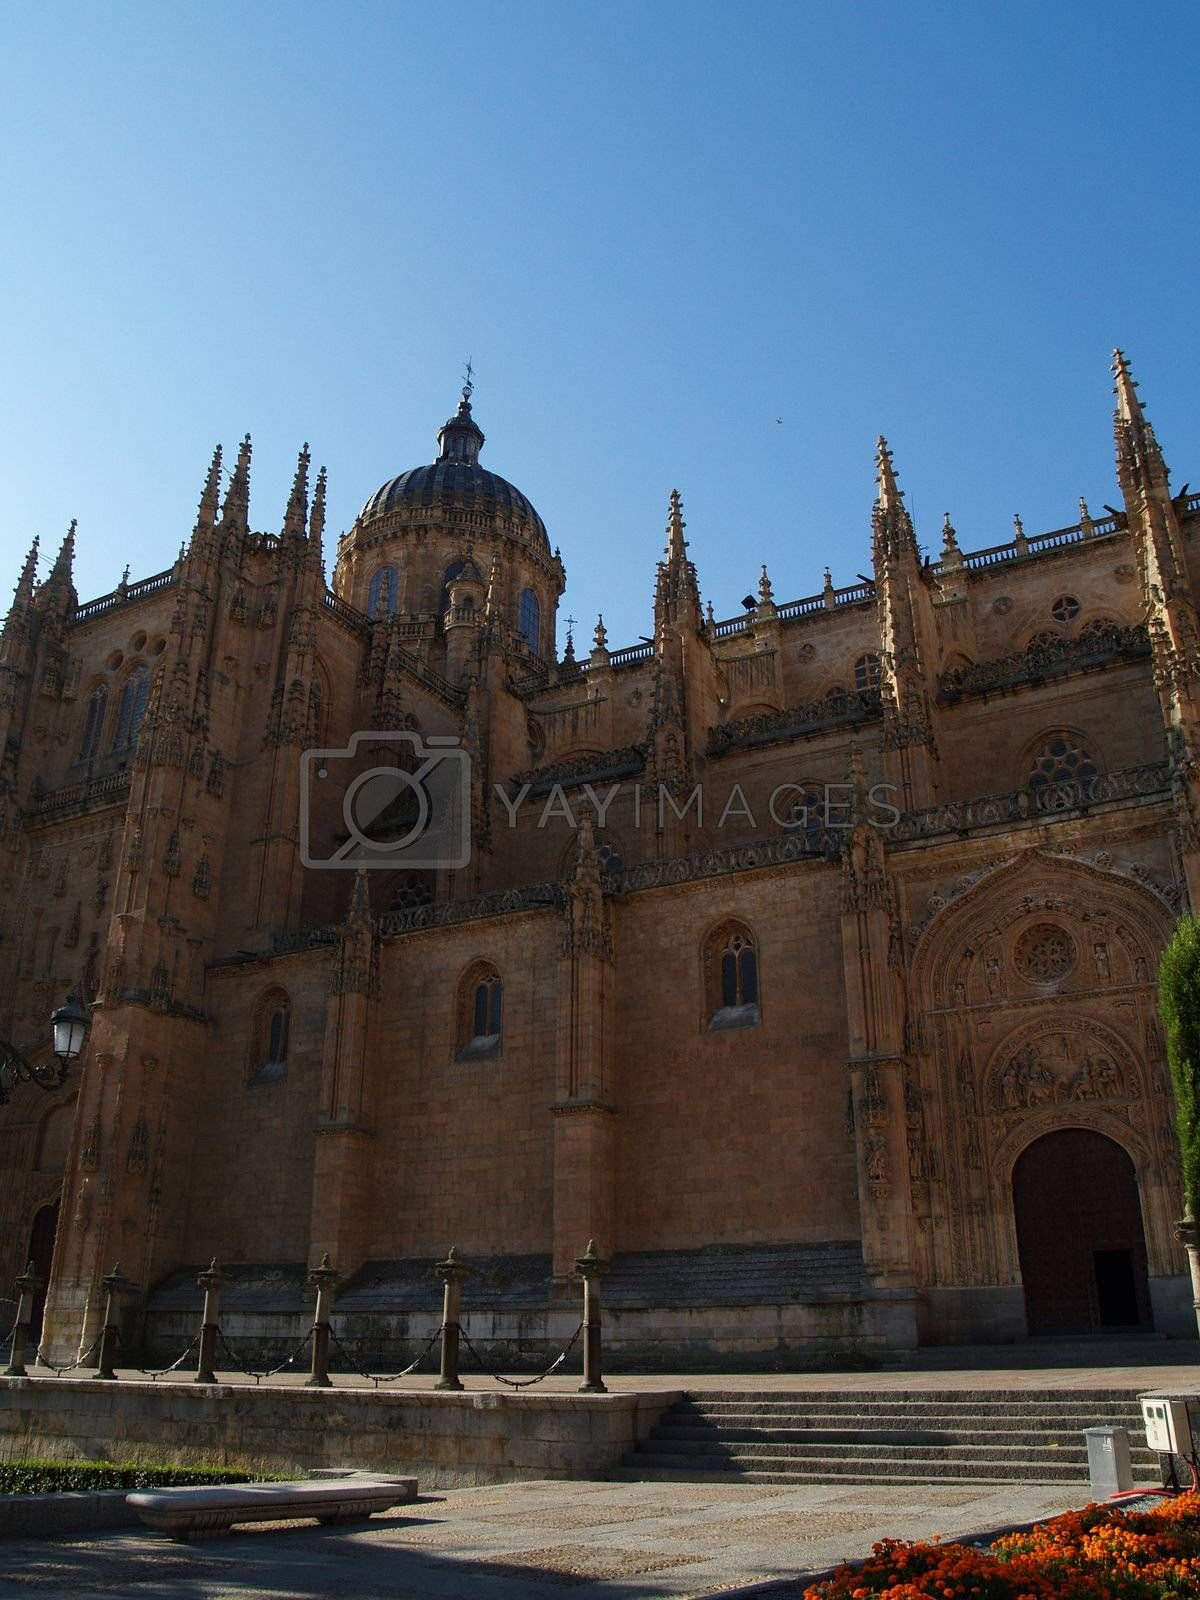 The new cathedral in Salamanca, Spain